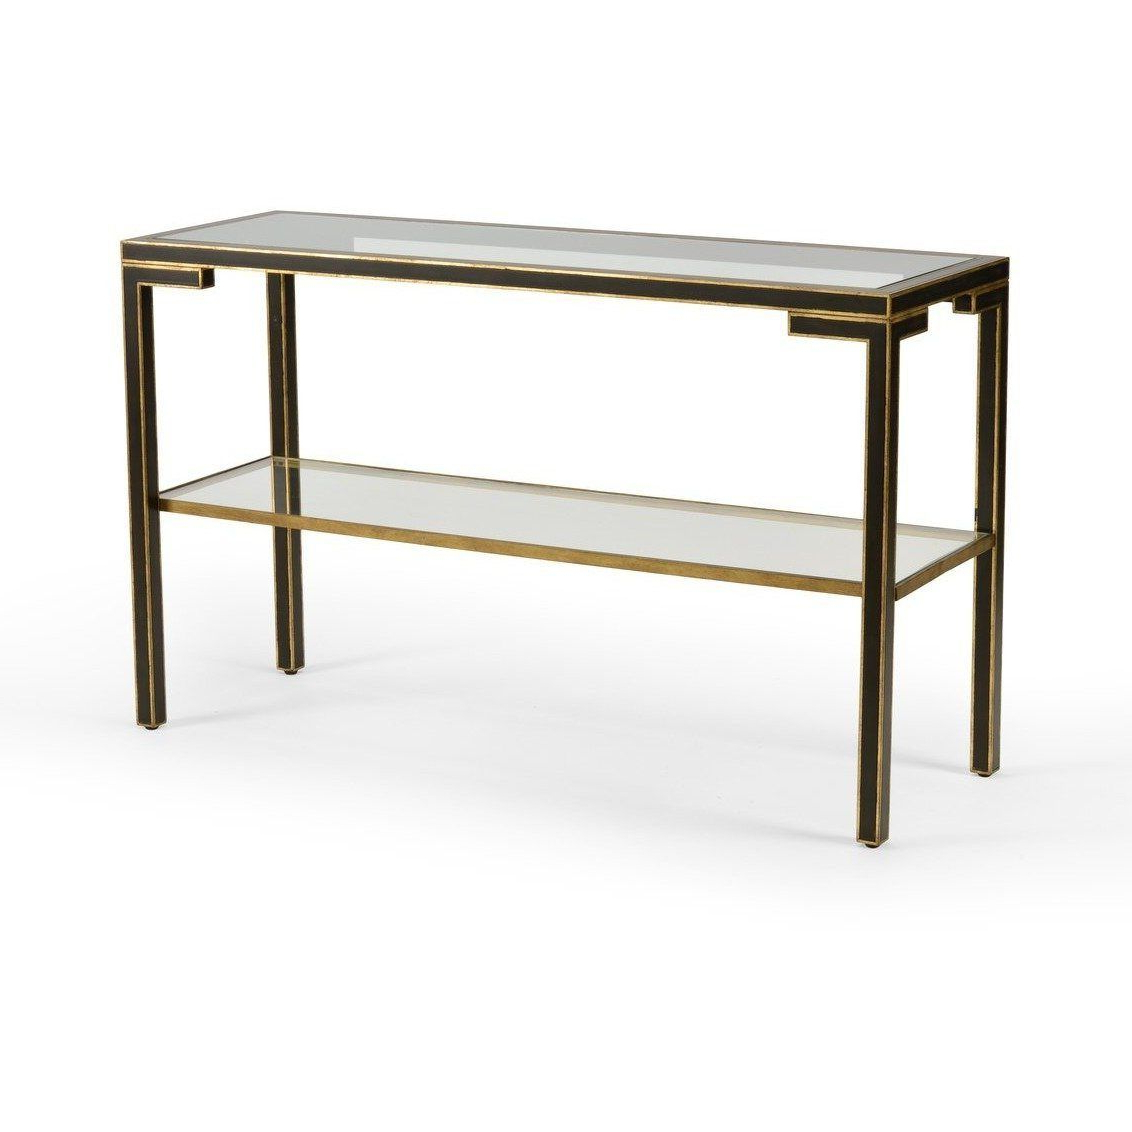 Chelsea House Decker Console 381874 | Products | Console, House, Chelsea Intended For Parsons Grey Marble Top & Dark Steel Base 48X16 Console Tables (Gallery 8 of 20)